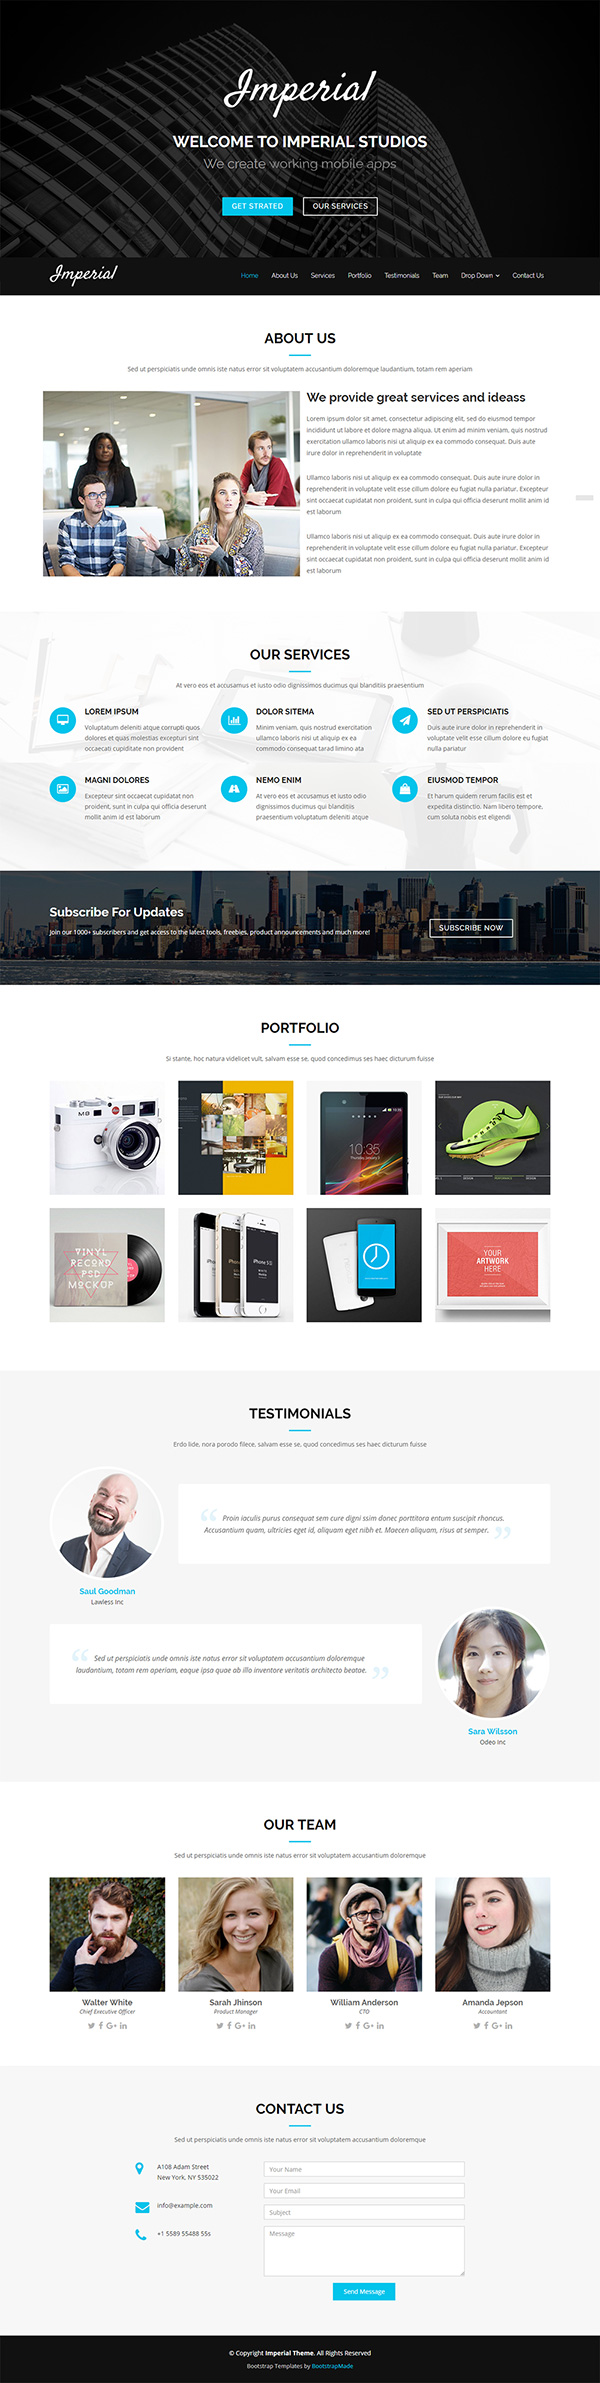 51+ Free Bootstrap Themes & Templates